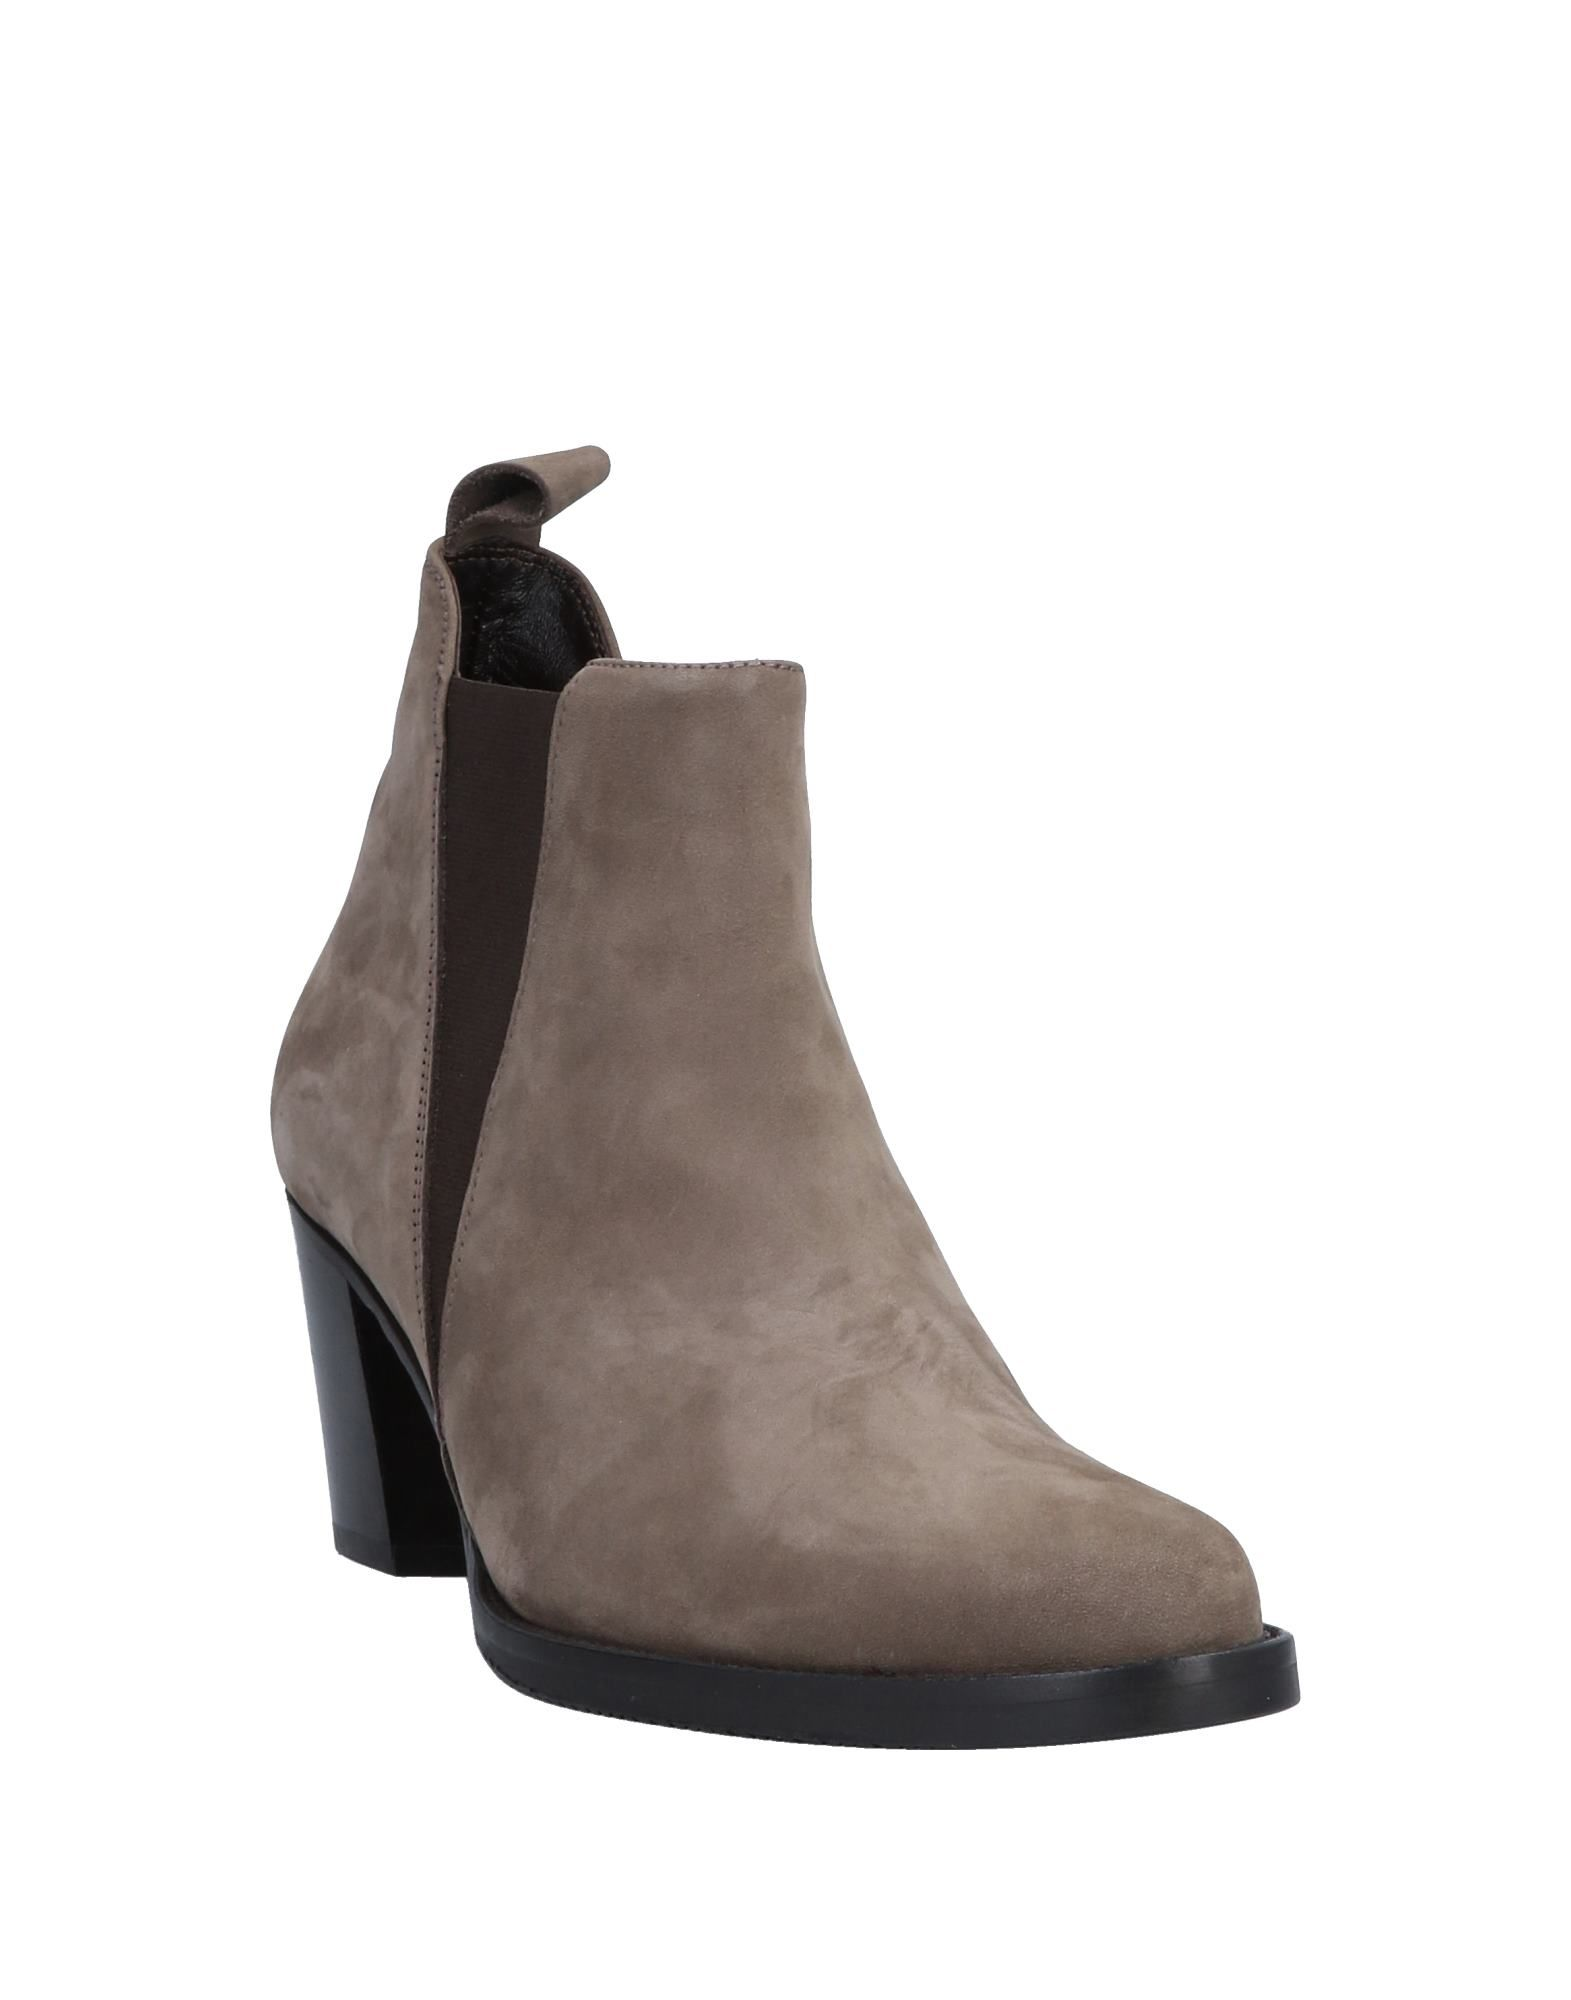 Antonio De - Luca Ankle Boot - De Women Antonio De Luca Ankle Boots online on  Canada - 11556712IF 4431a7